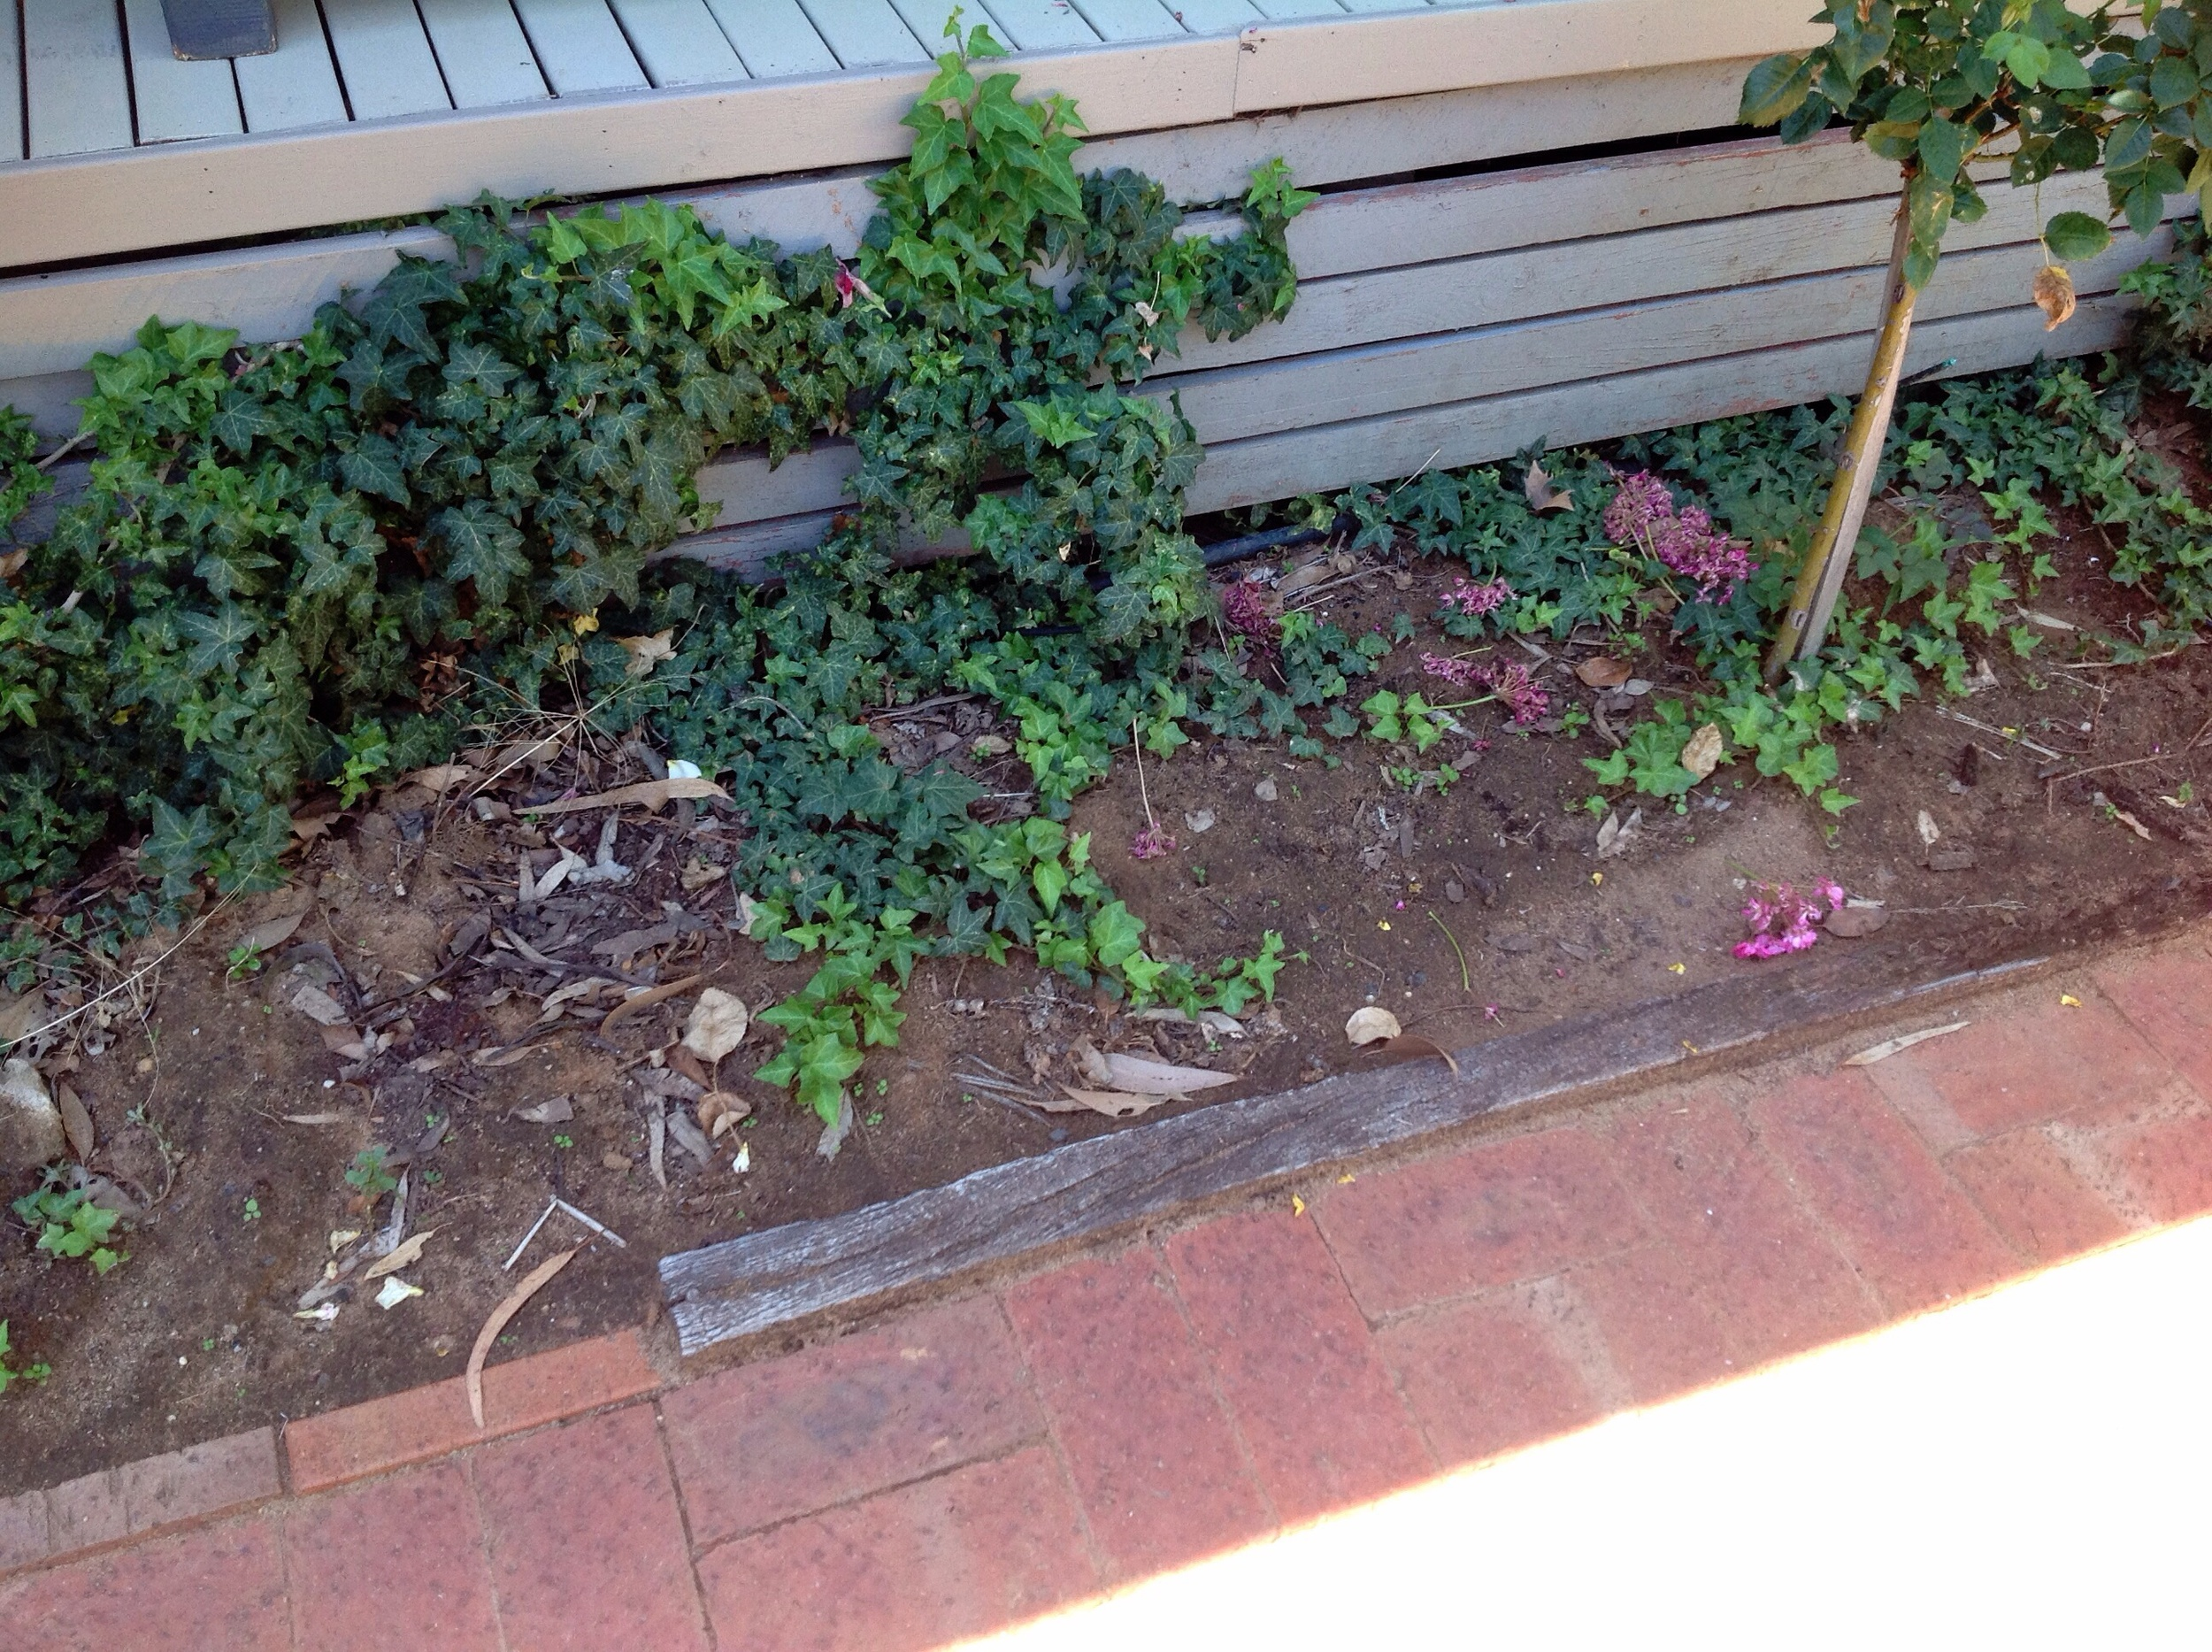 Not only do the plants against the building compromise the building, but having the timber in the garden makes a great appetizer for the termites before they make it inside.